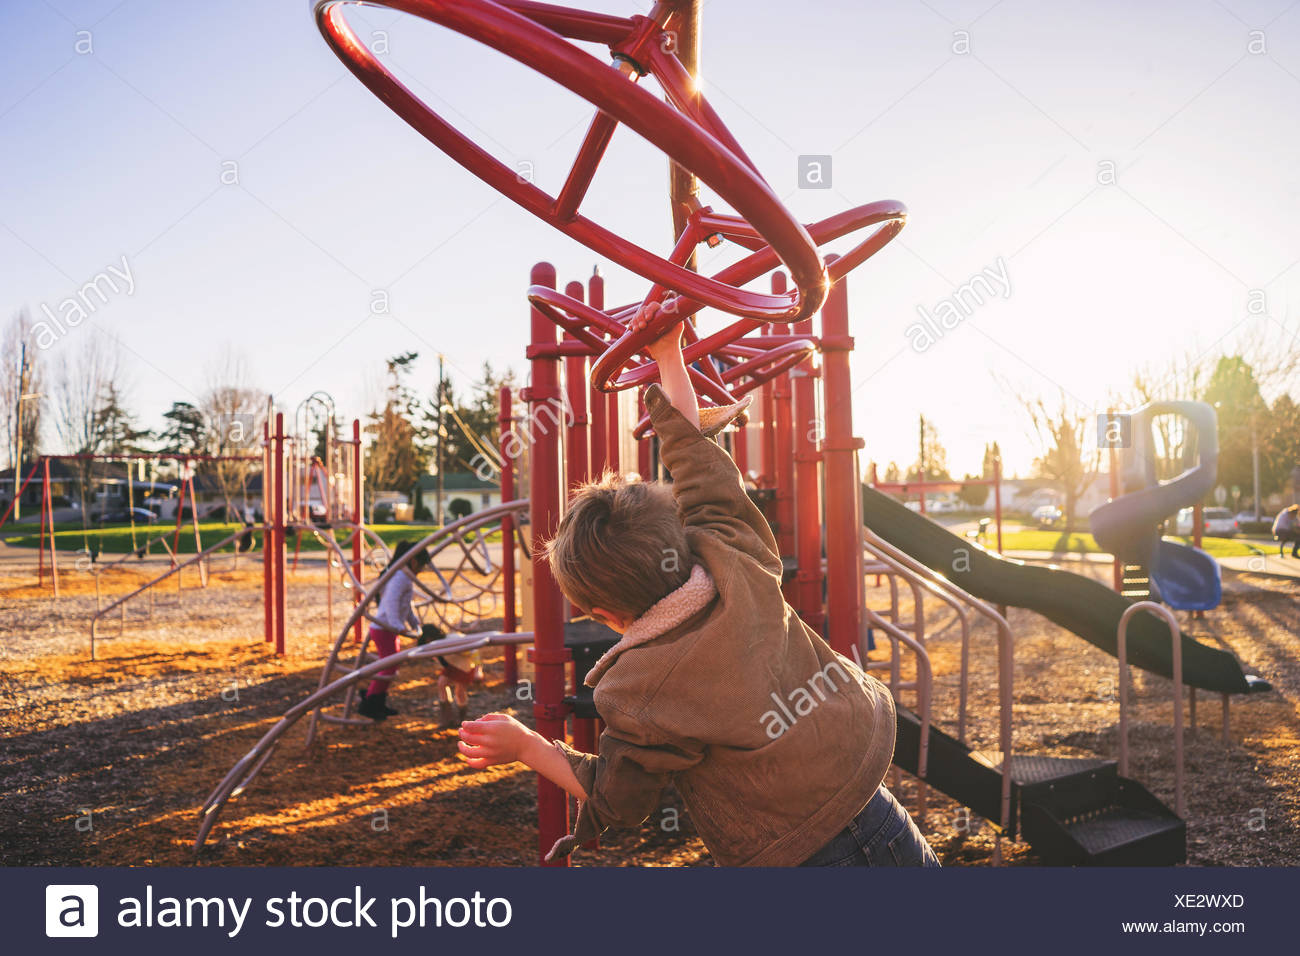 Rear view of boy swinging on monkey bars in playground - Stock Image